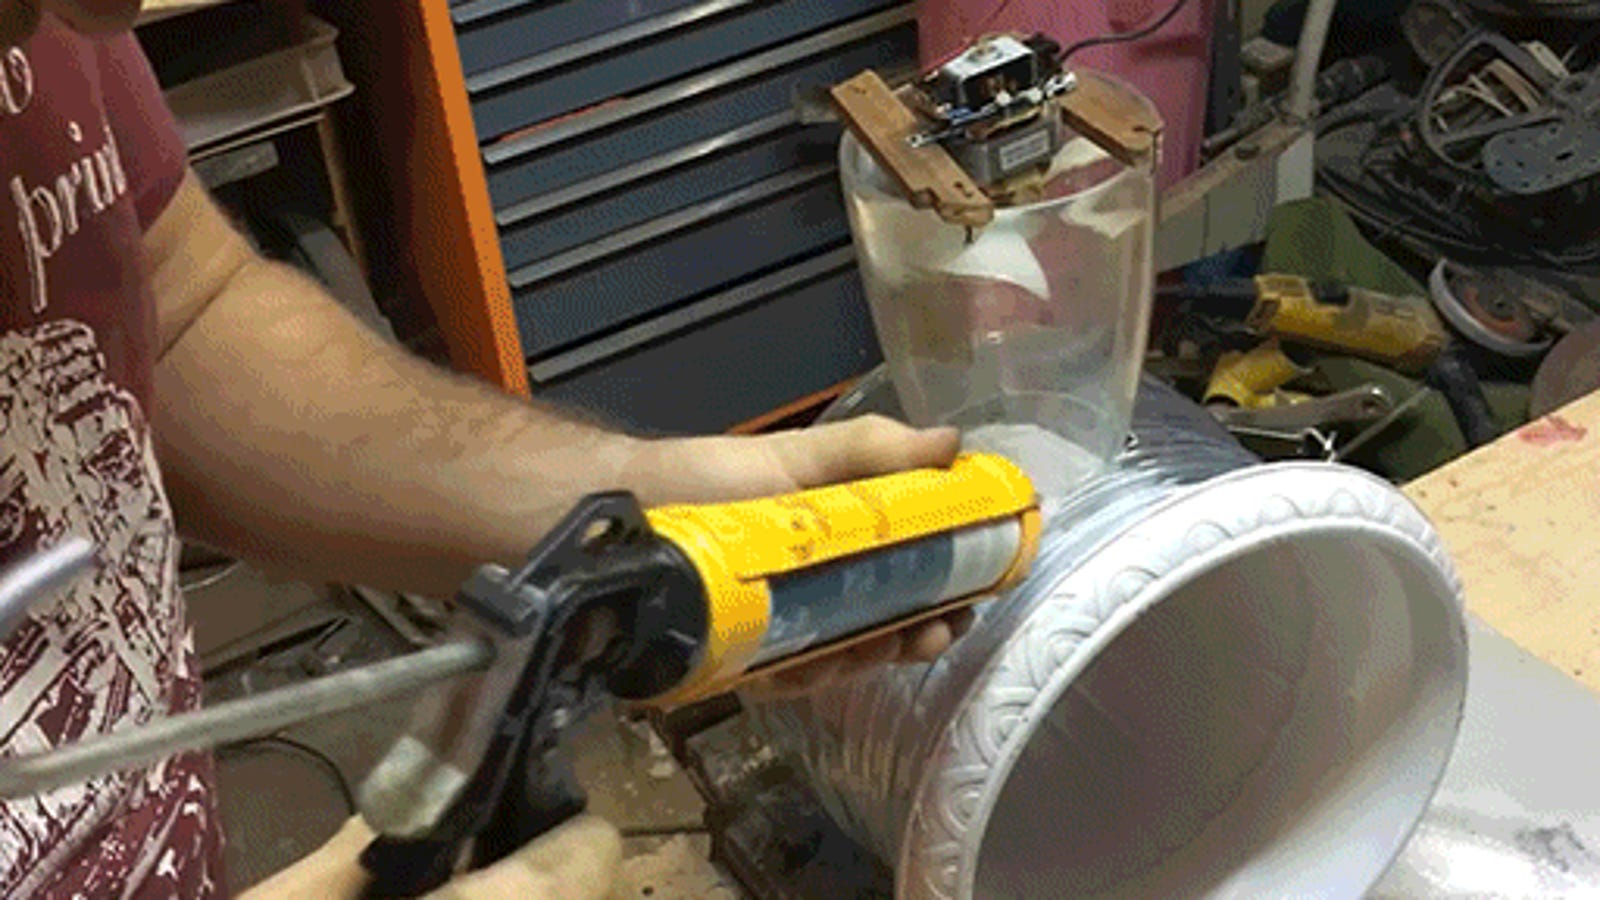 How to Make a DIY Dyson Bladeless Fan with a Water Jug and a Plant Vase